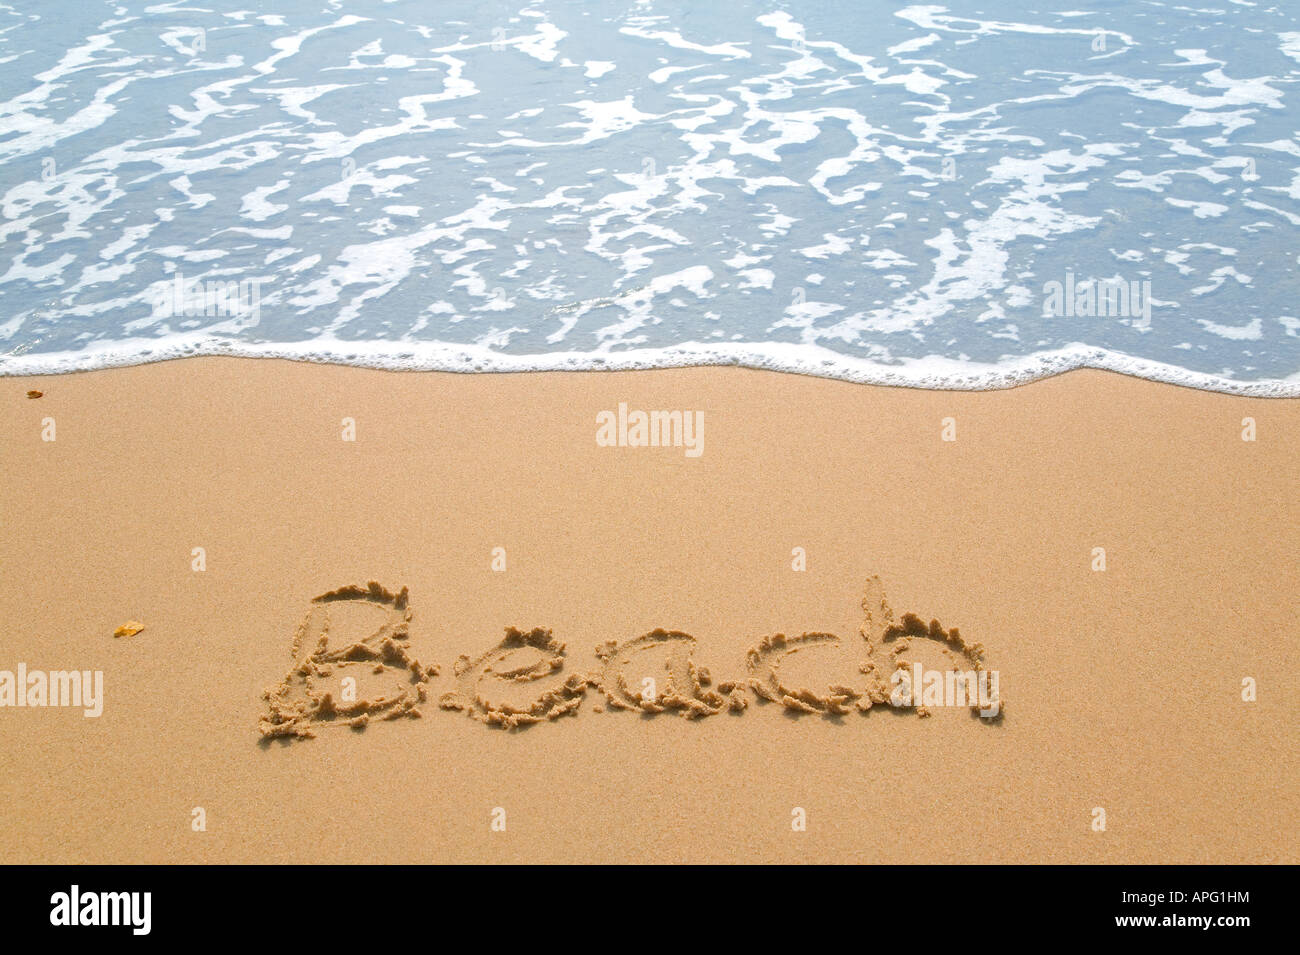 Beach written on a golden sandy beach next to the waters edge Stock Photo